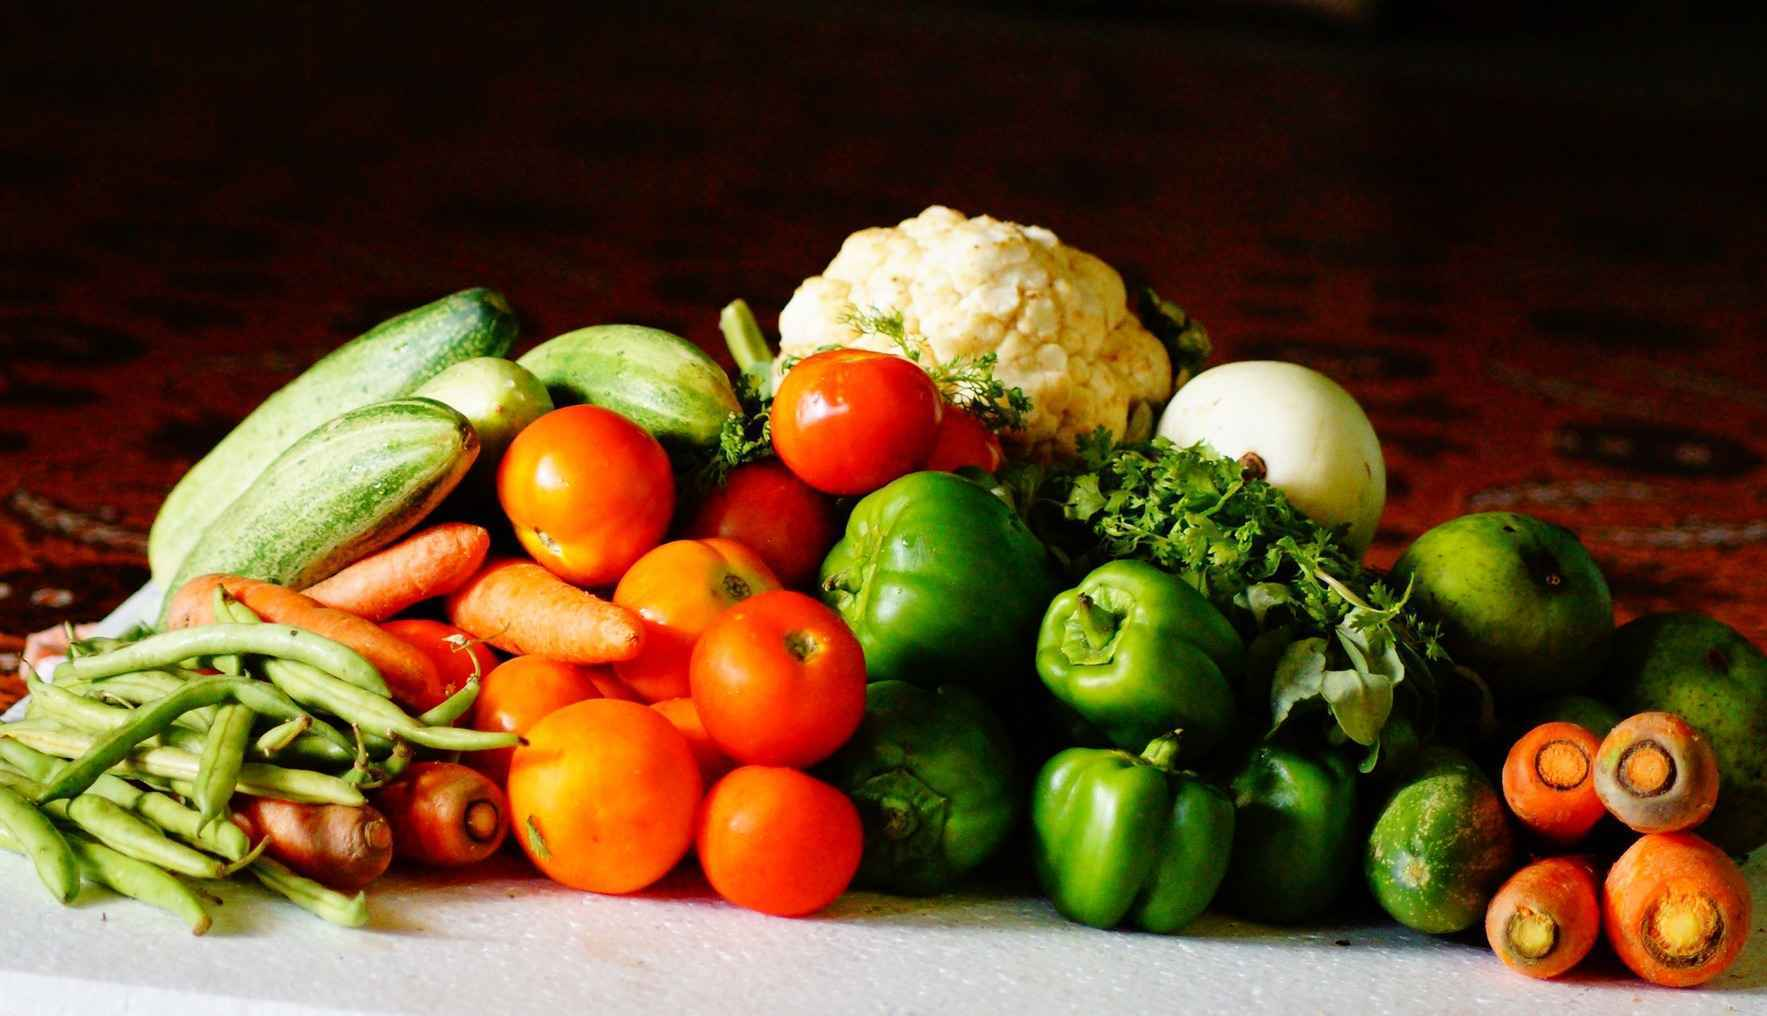 Support Fresh Food from local farms & ranches to our underserved in need image